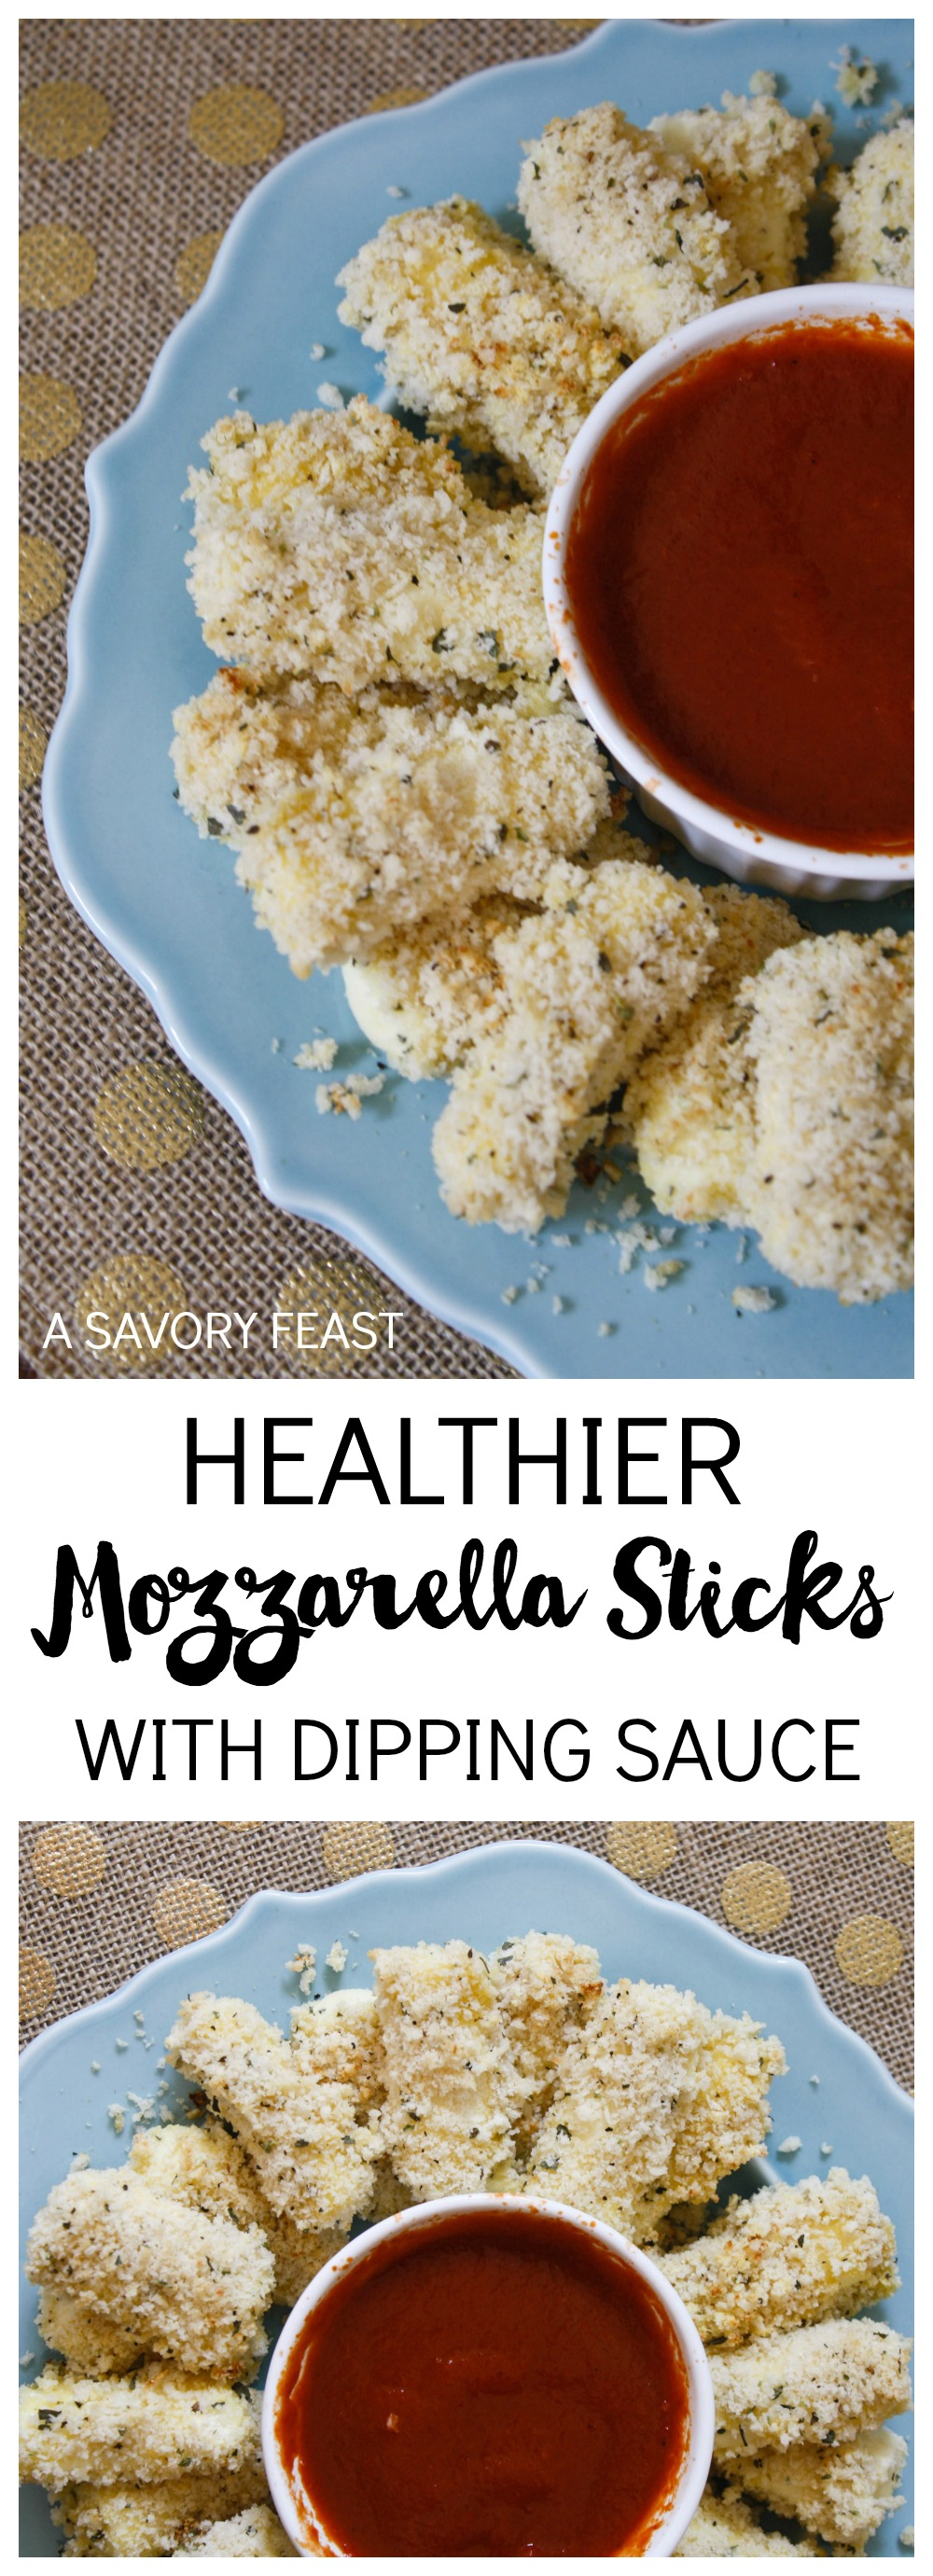 Serve these Healthier Mozzarella Sticks at your holiday party! The perfect appetizer for any occasion.